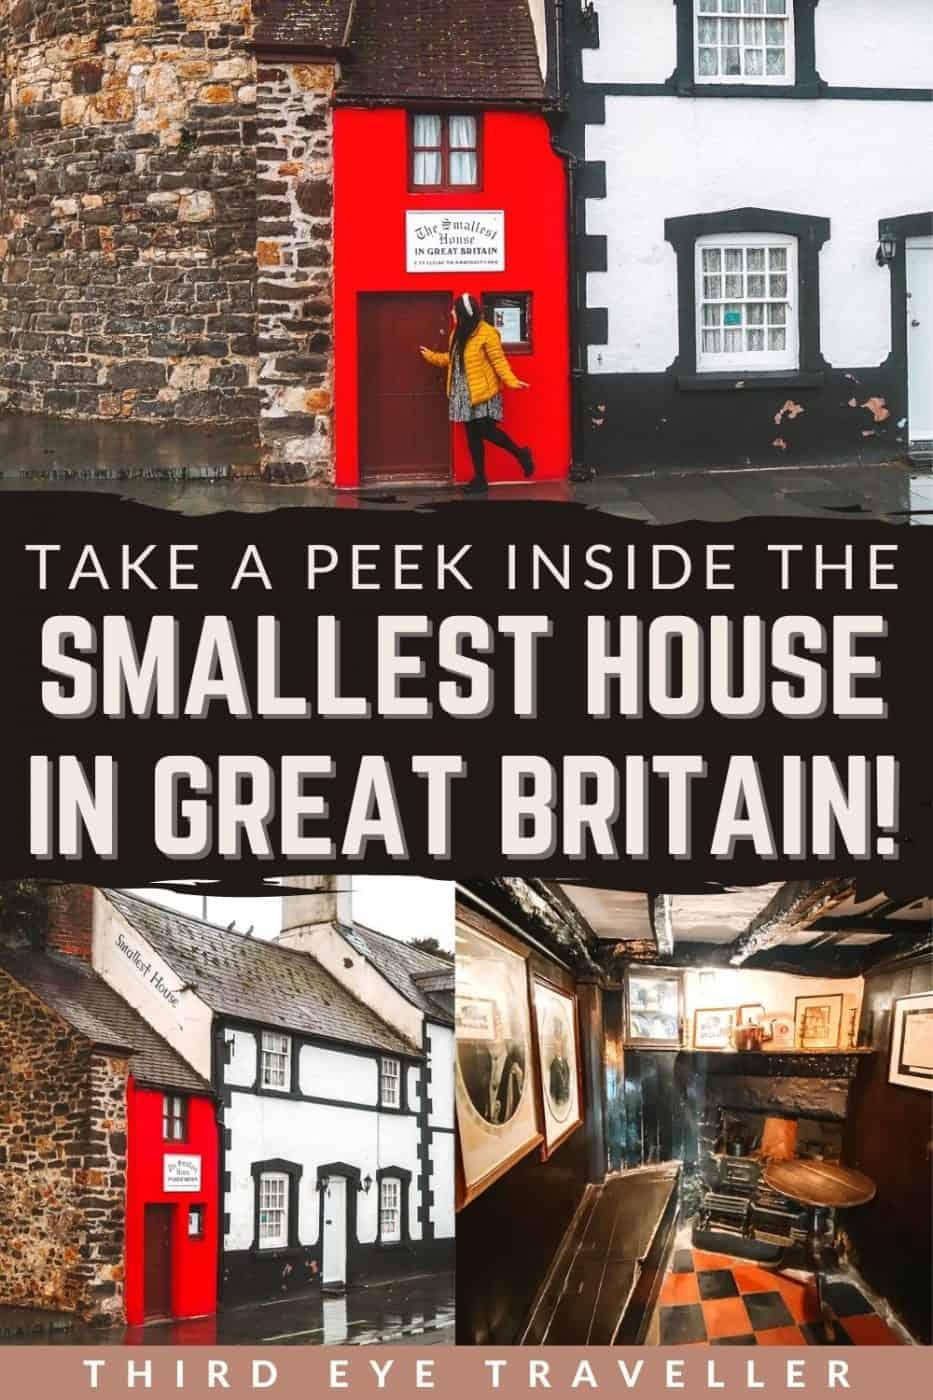 Inside Smallest House in Britain